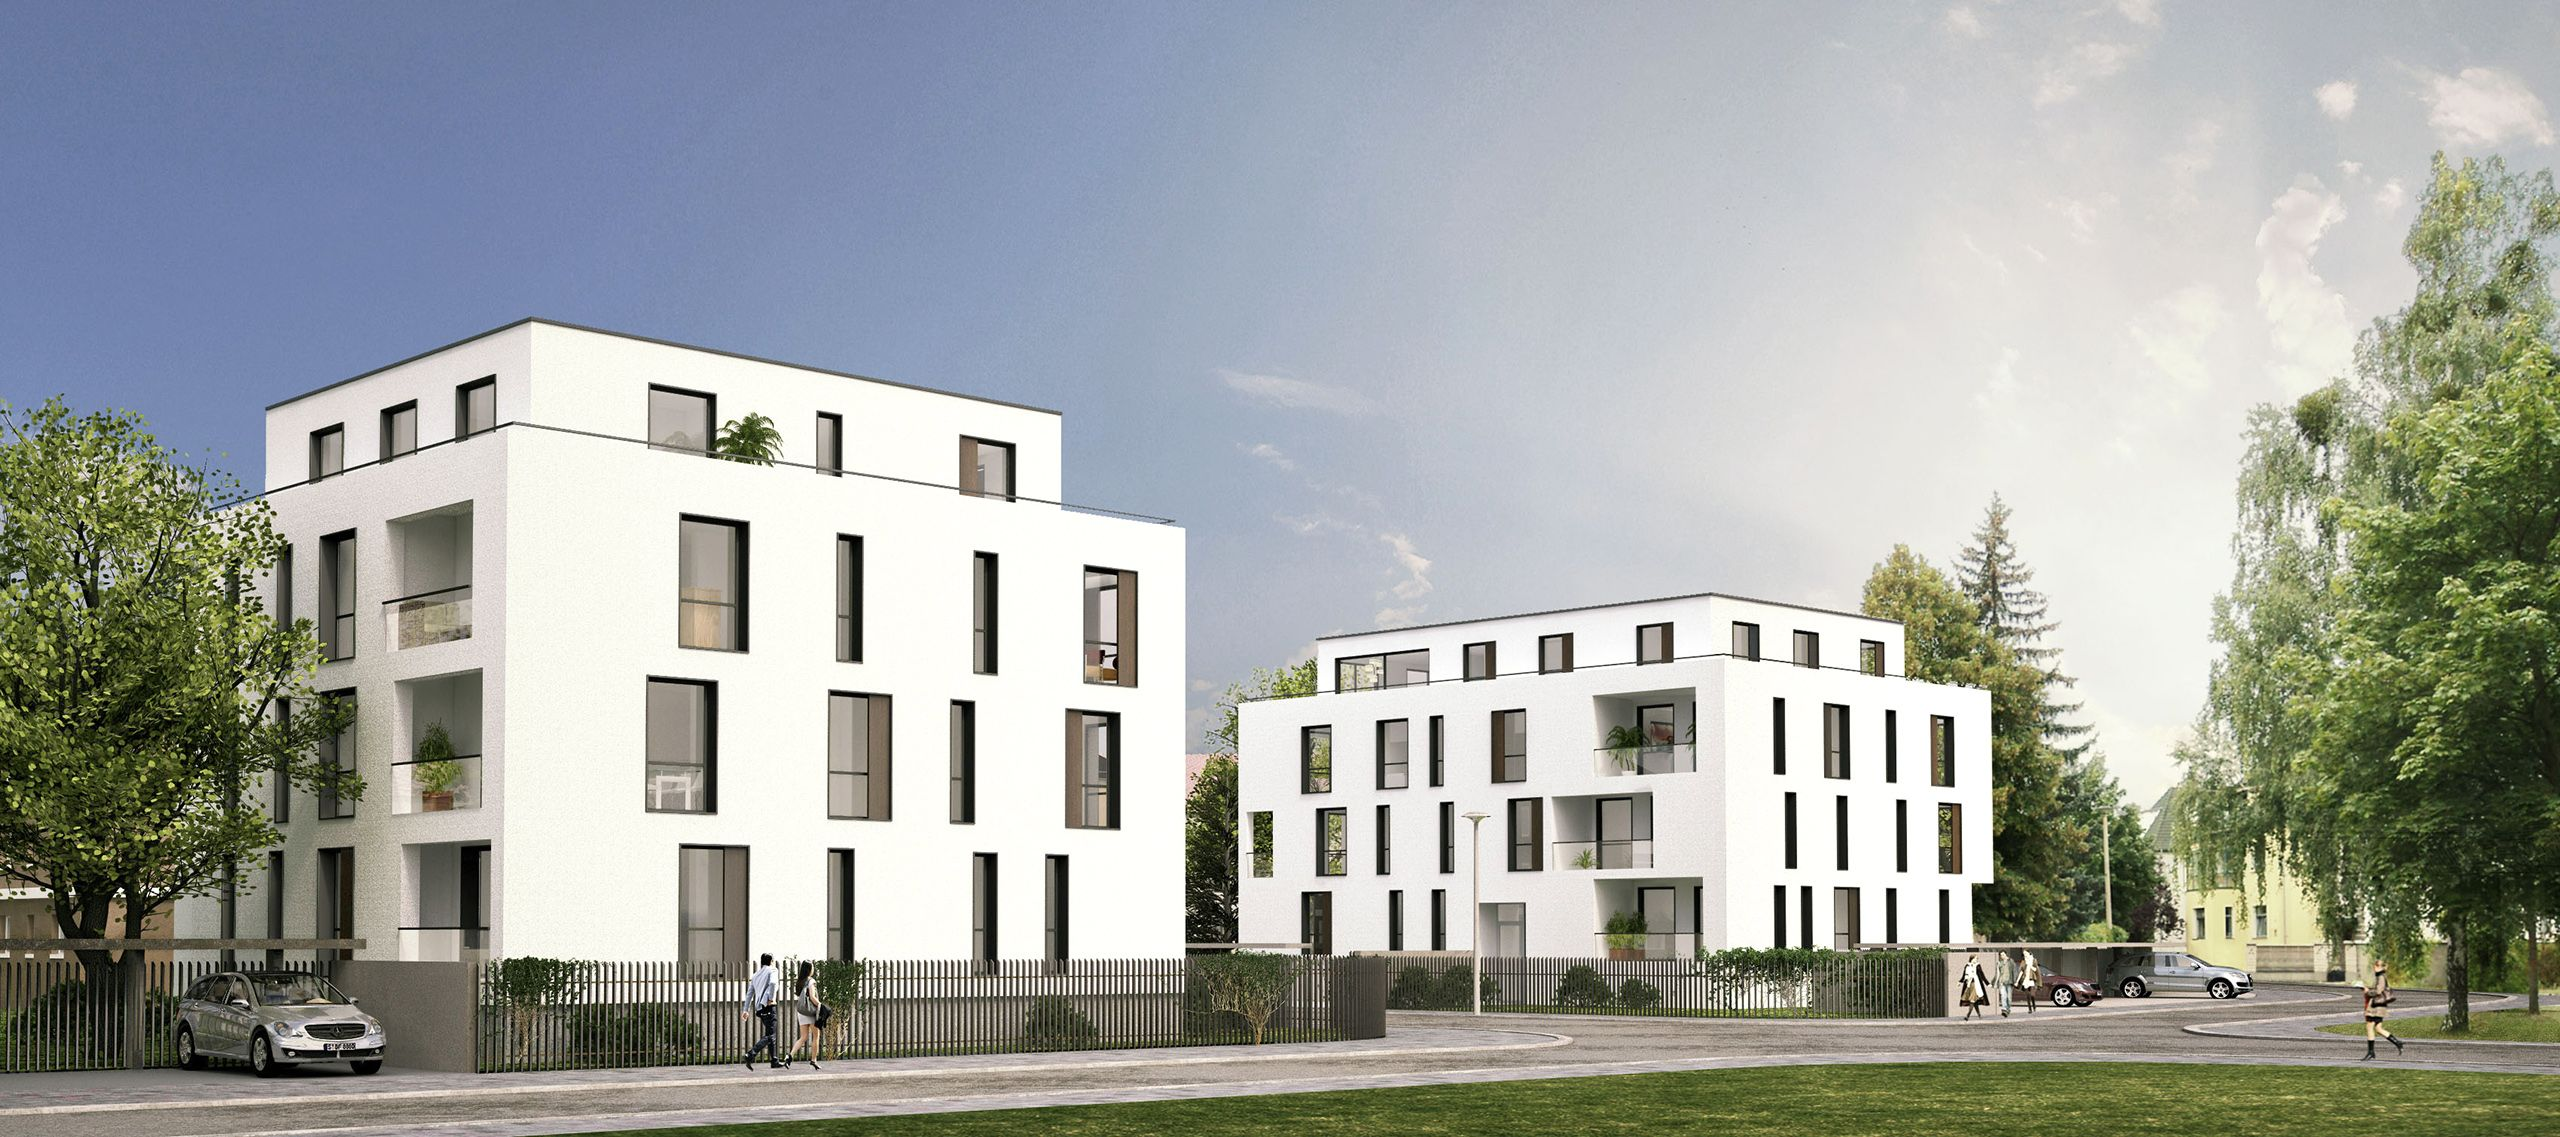 Architektur Rendering Dessau - Bauhaus-campus - Residential - Render-manufaktur. Architektur Visualisierung Visualisier… | Architektur Visualisierung, Visualisierung, Render Architecture